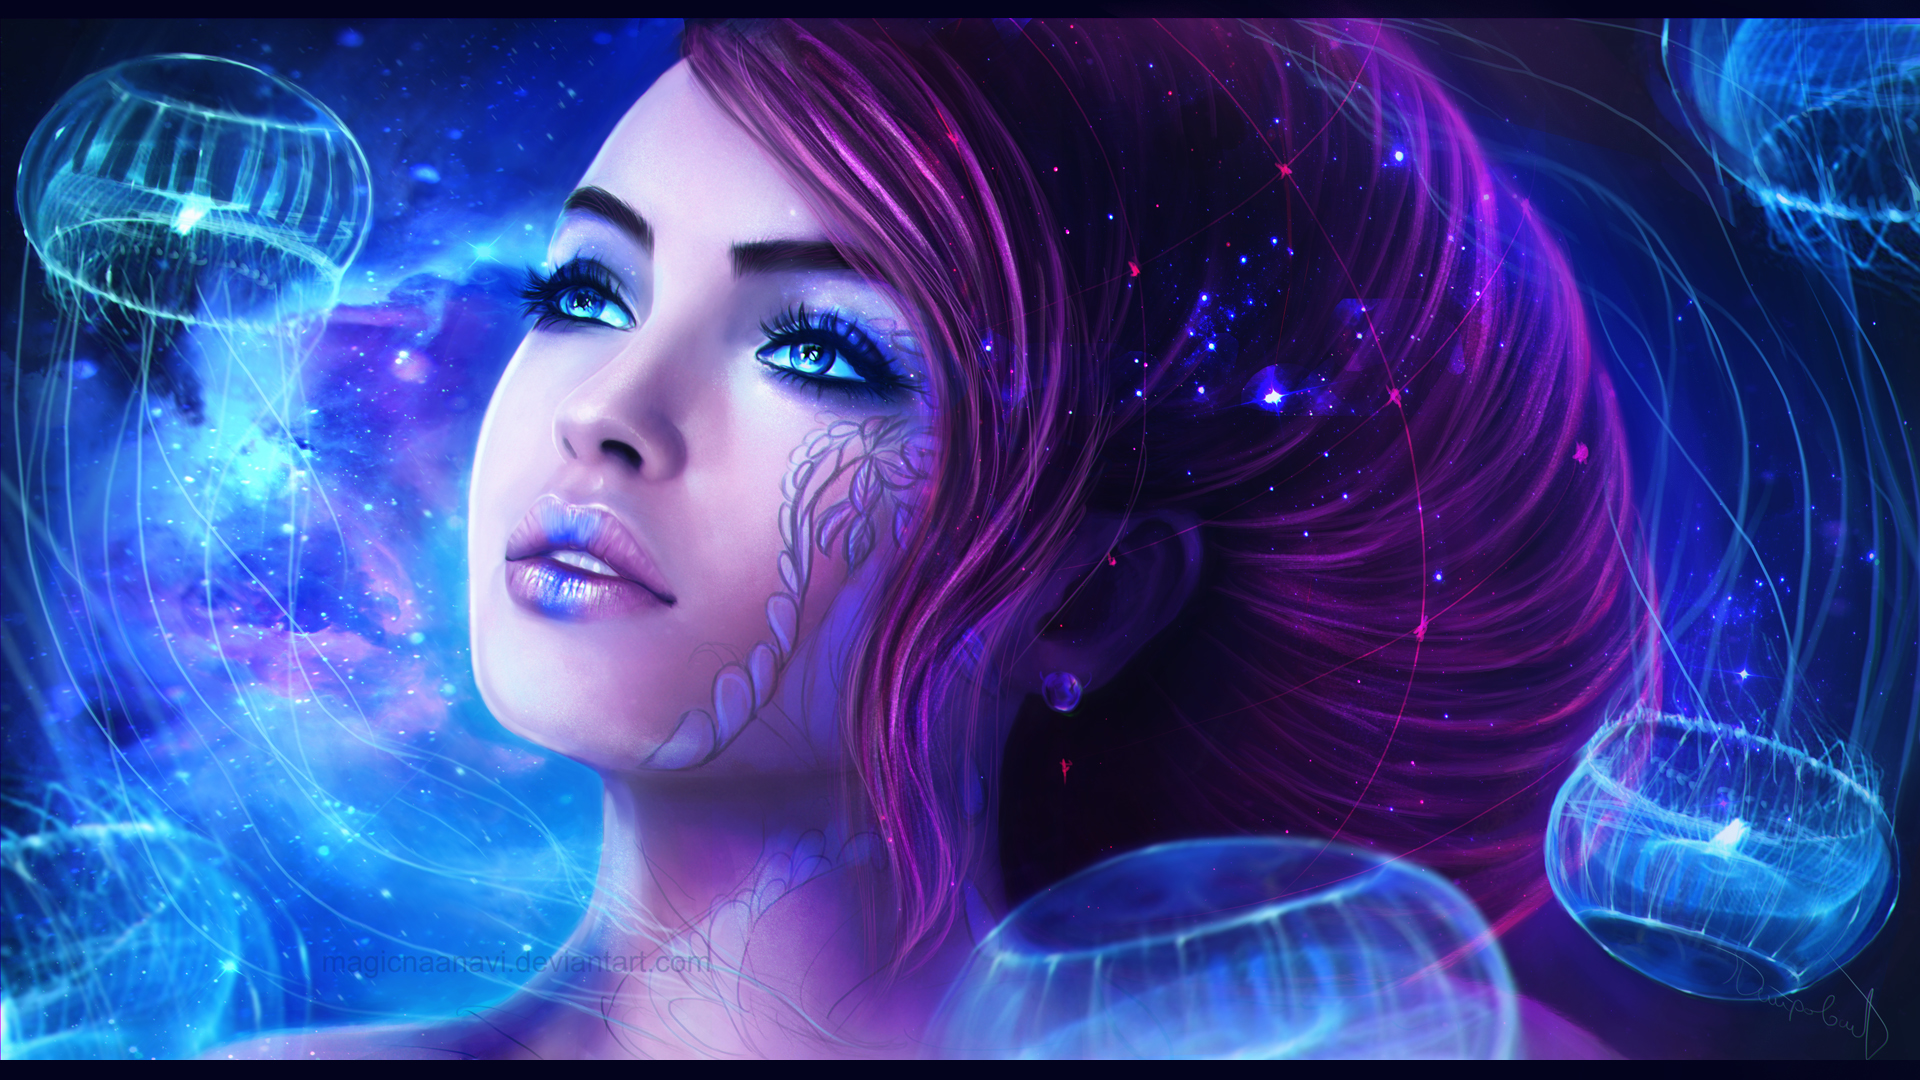 we_are_made_of_stardust_by_magicnaanavi-d6hnacw.jpg